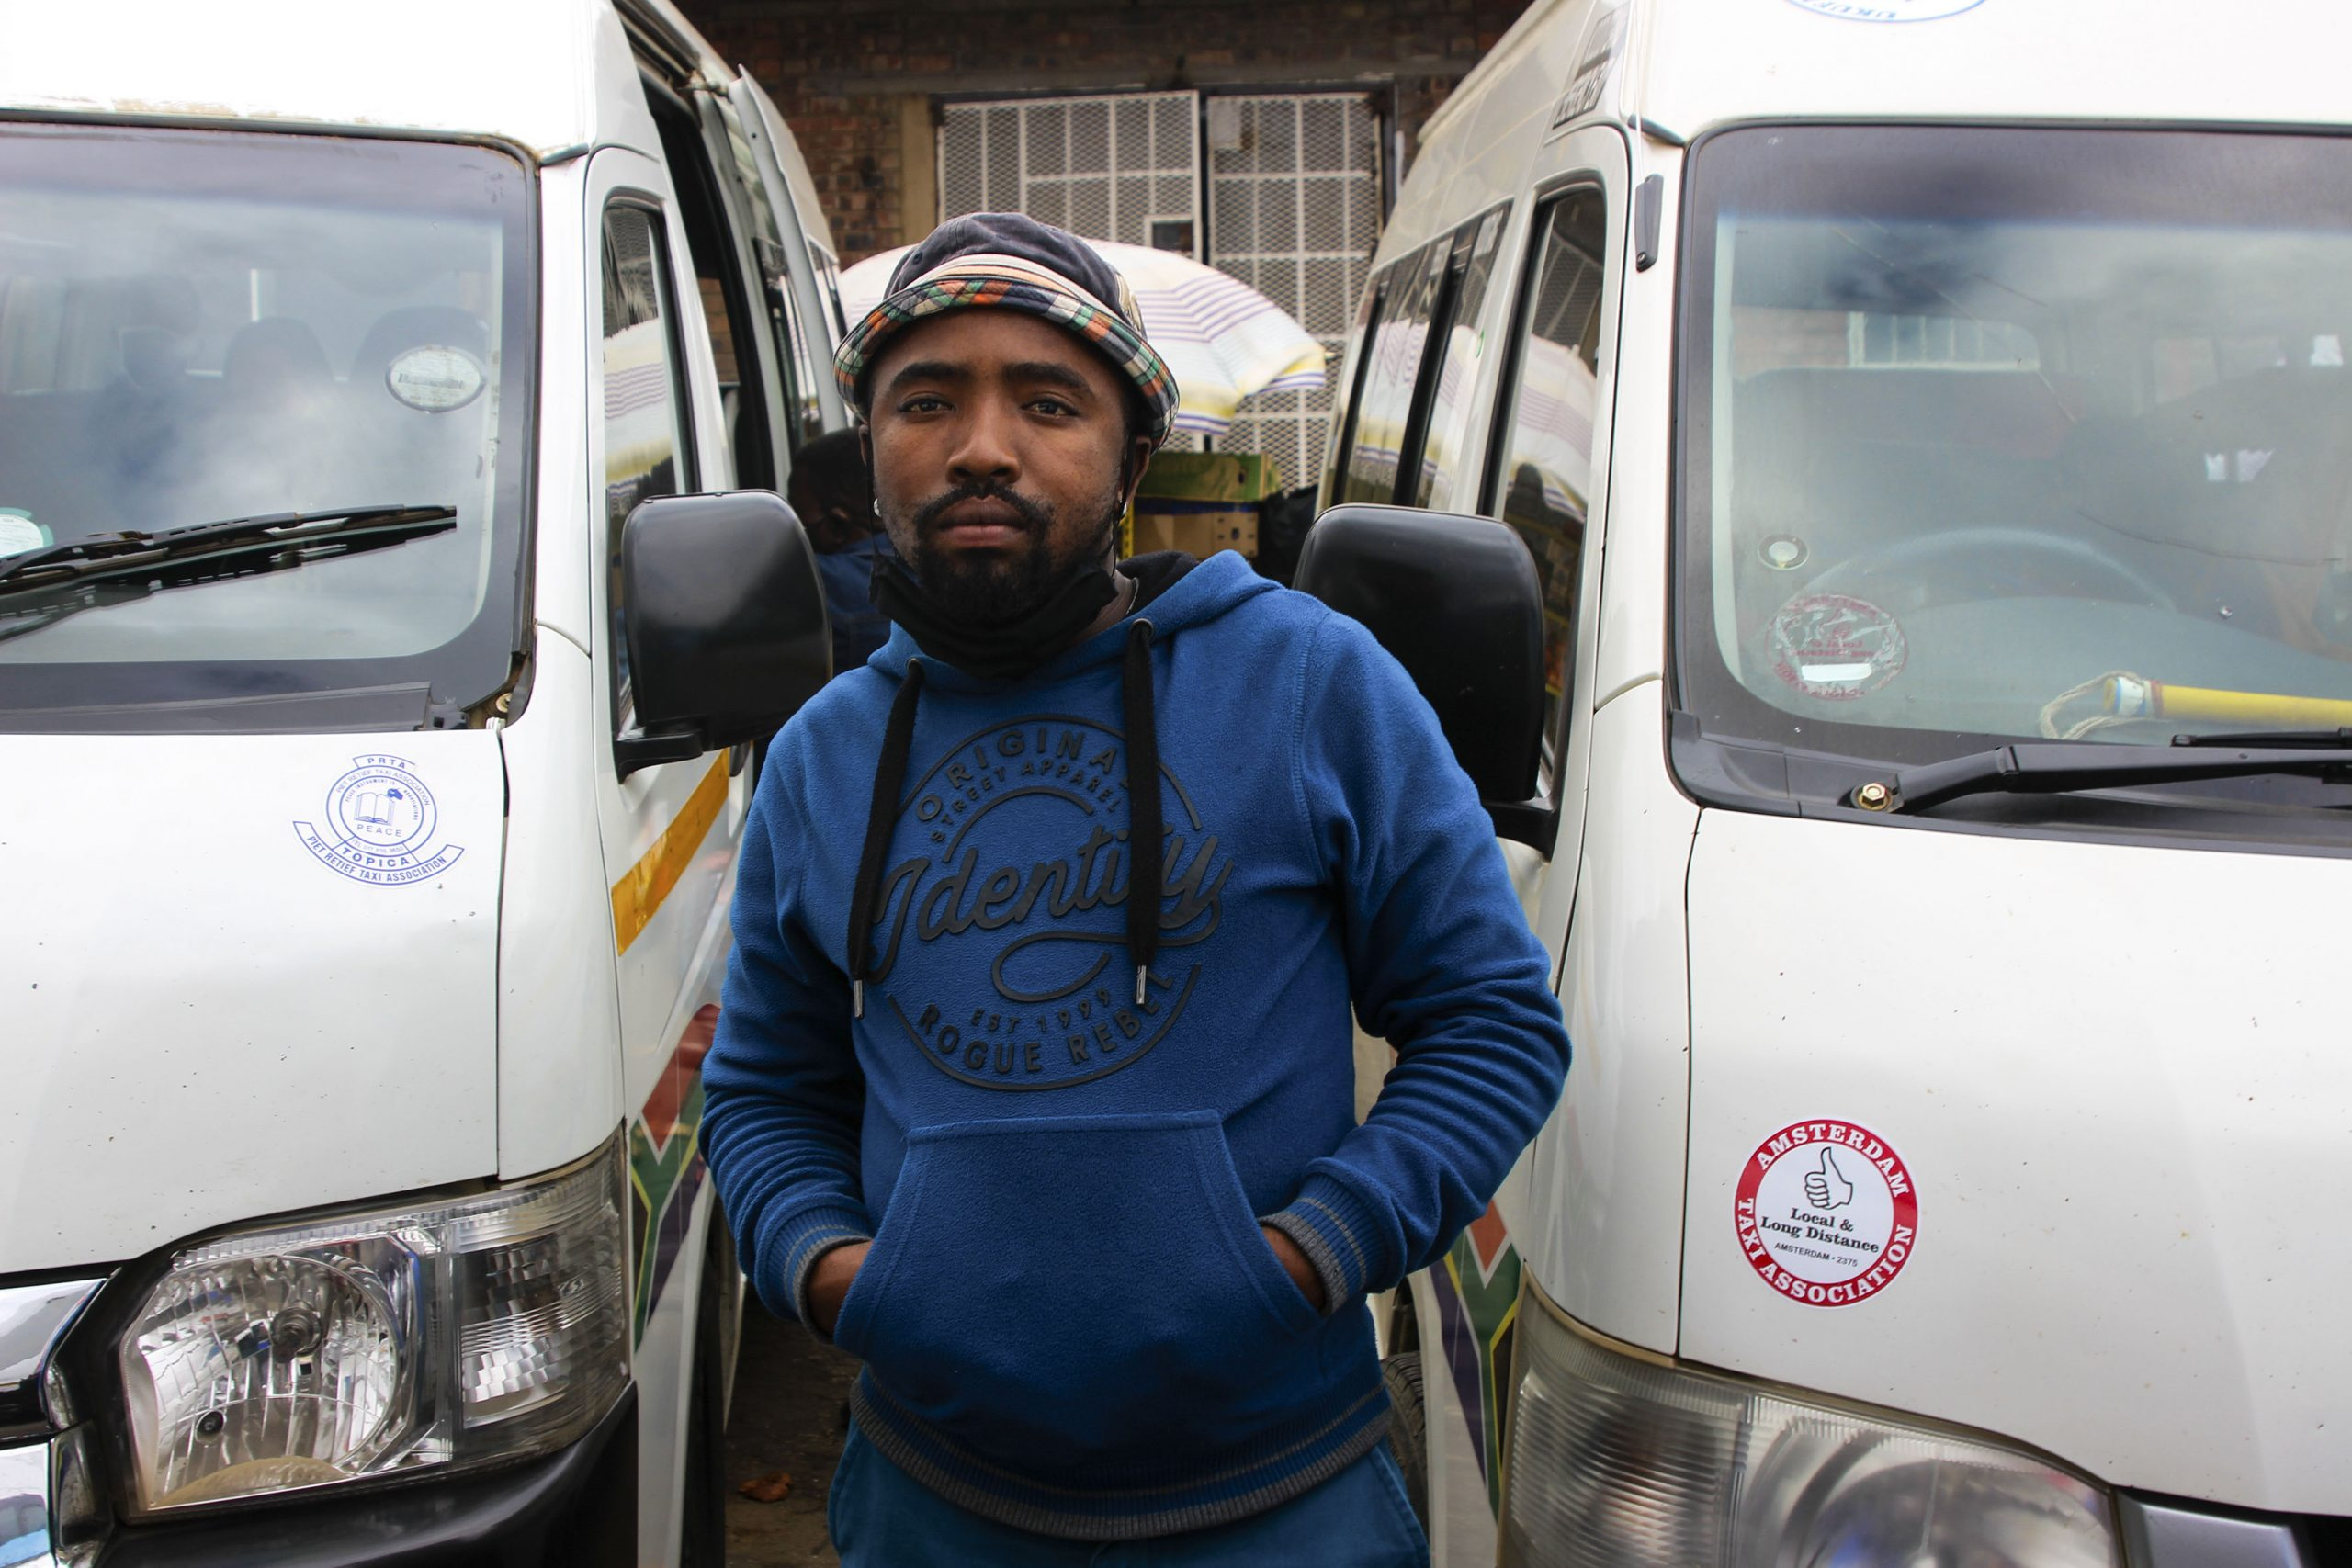 8 June 2020: Jacobs, a taxi driver in Mkhondo, Mpumalanga, says the police and soldiers once threatened to impound his vehicle for carrying 10 passengers. (Photograph by Magnificent Mndebele)